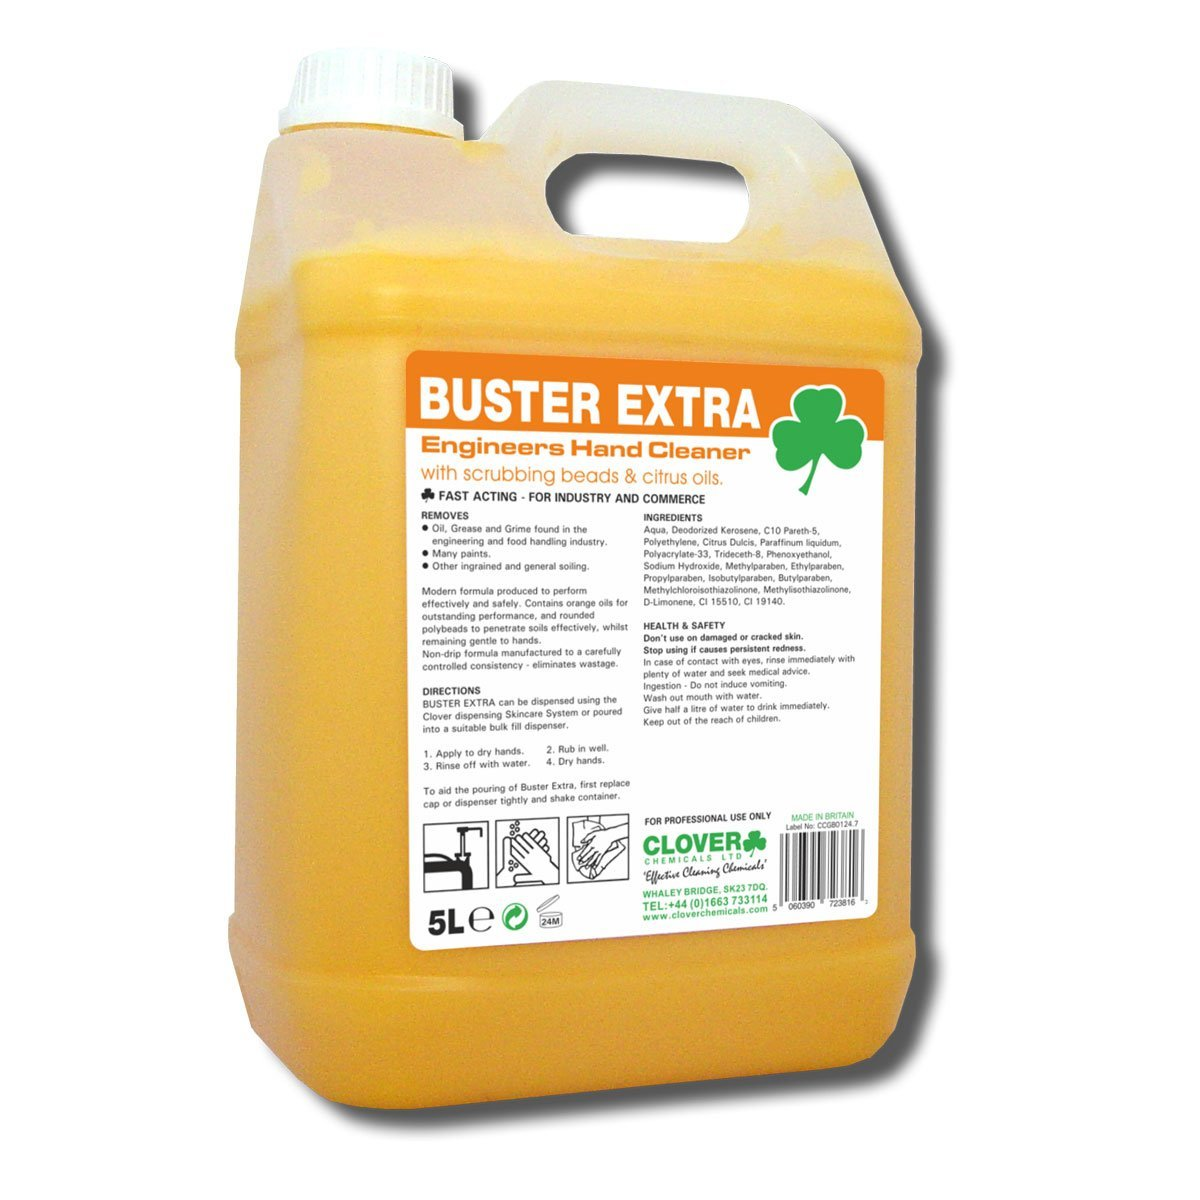 Clover Buster Extra - Engineers Hand Cleaner 5 Litre